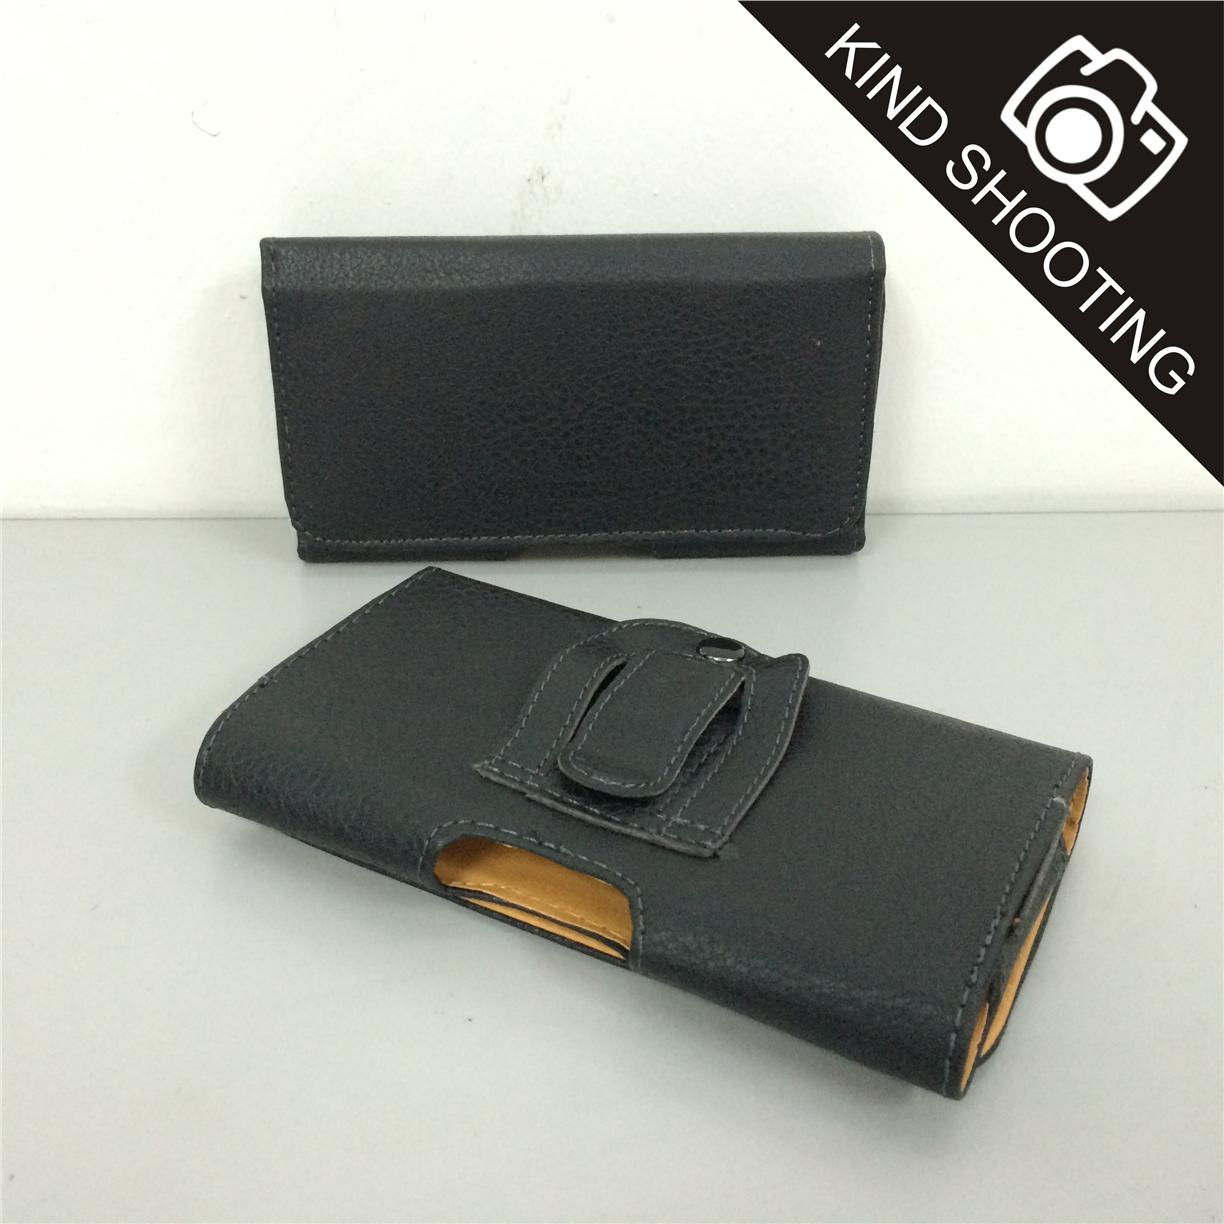 Horizontal Samsung Galaxy Note 1 2 3 4 NEO Belt Pouch Bag